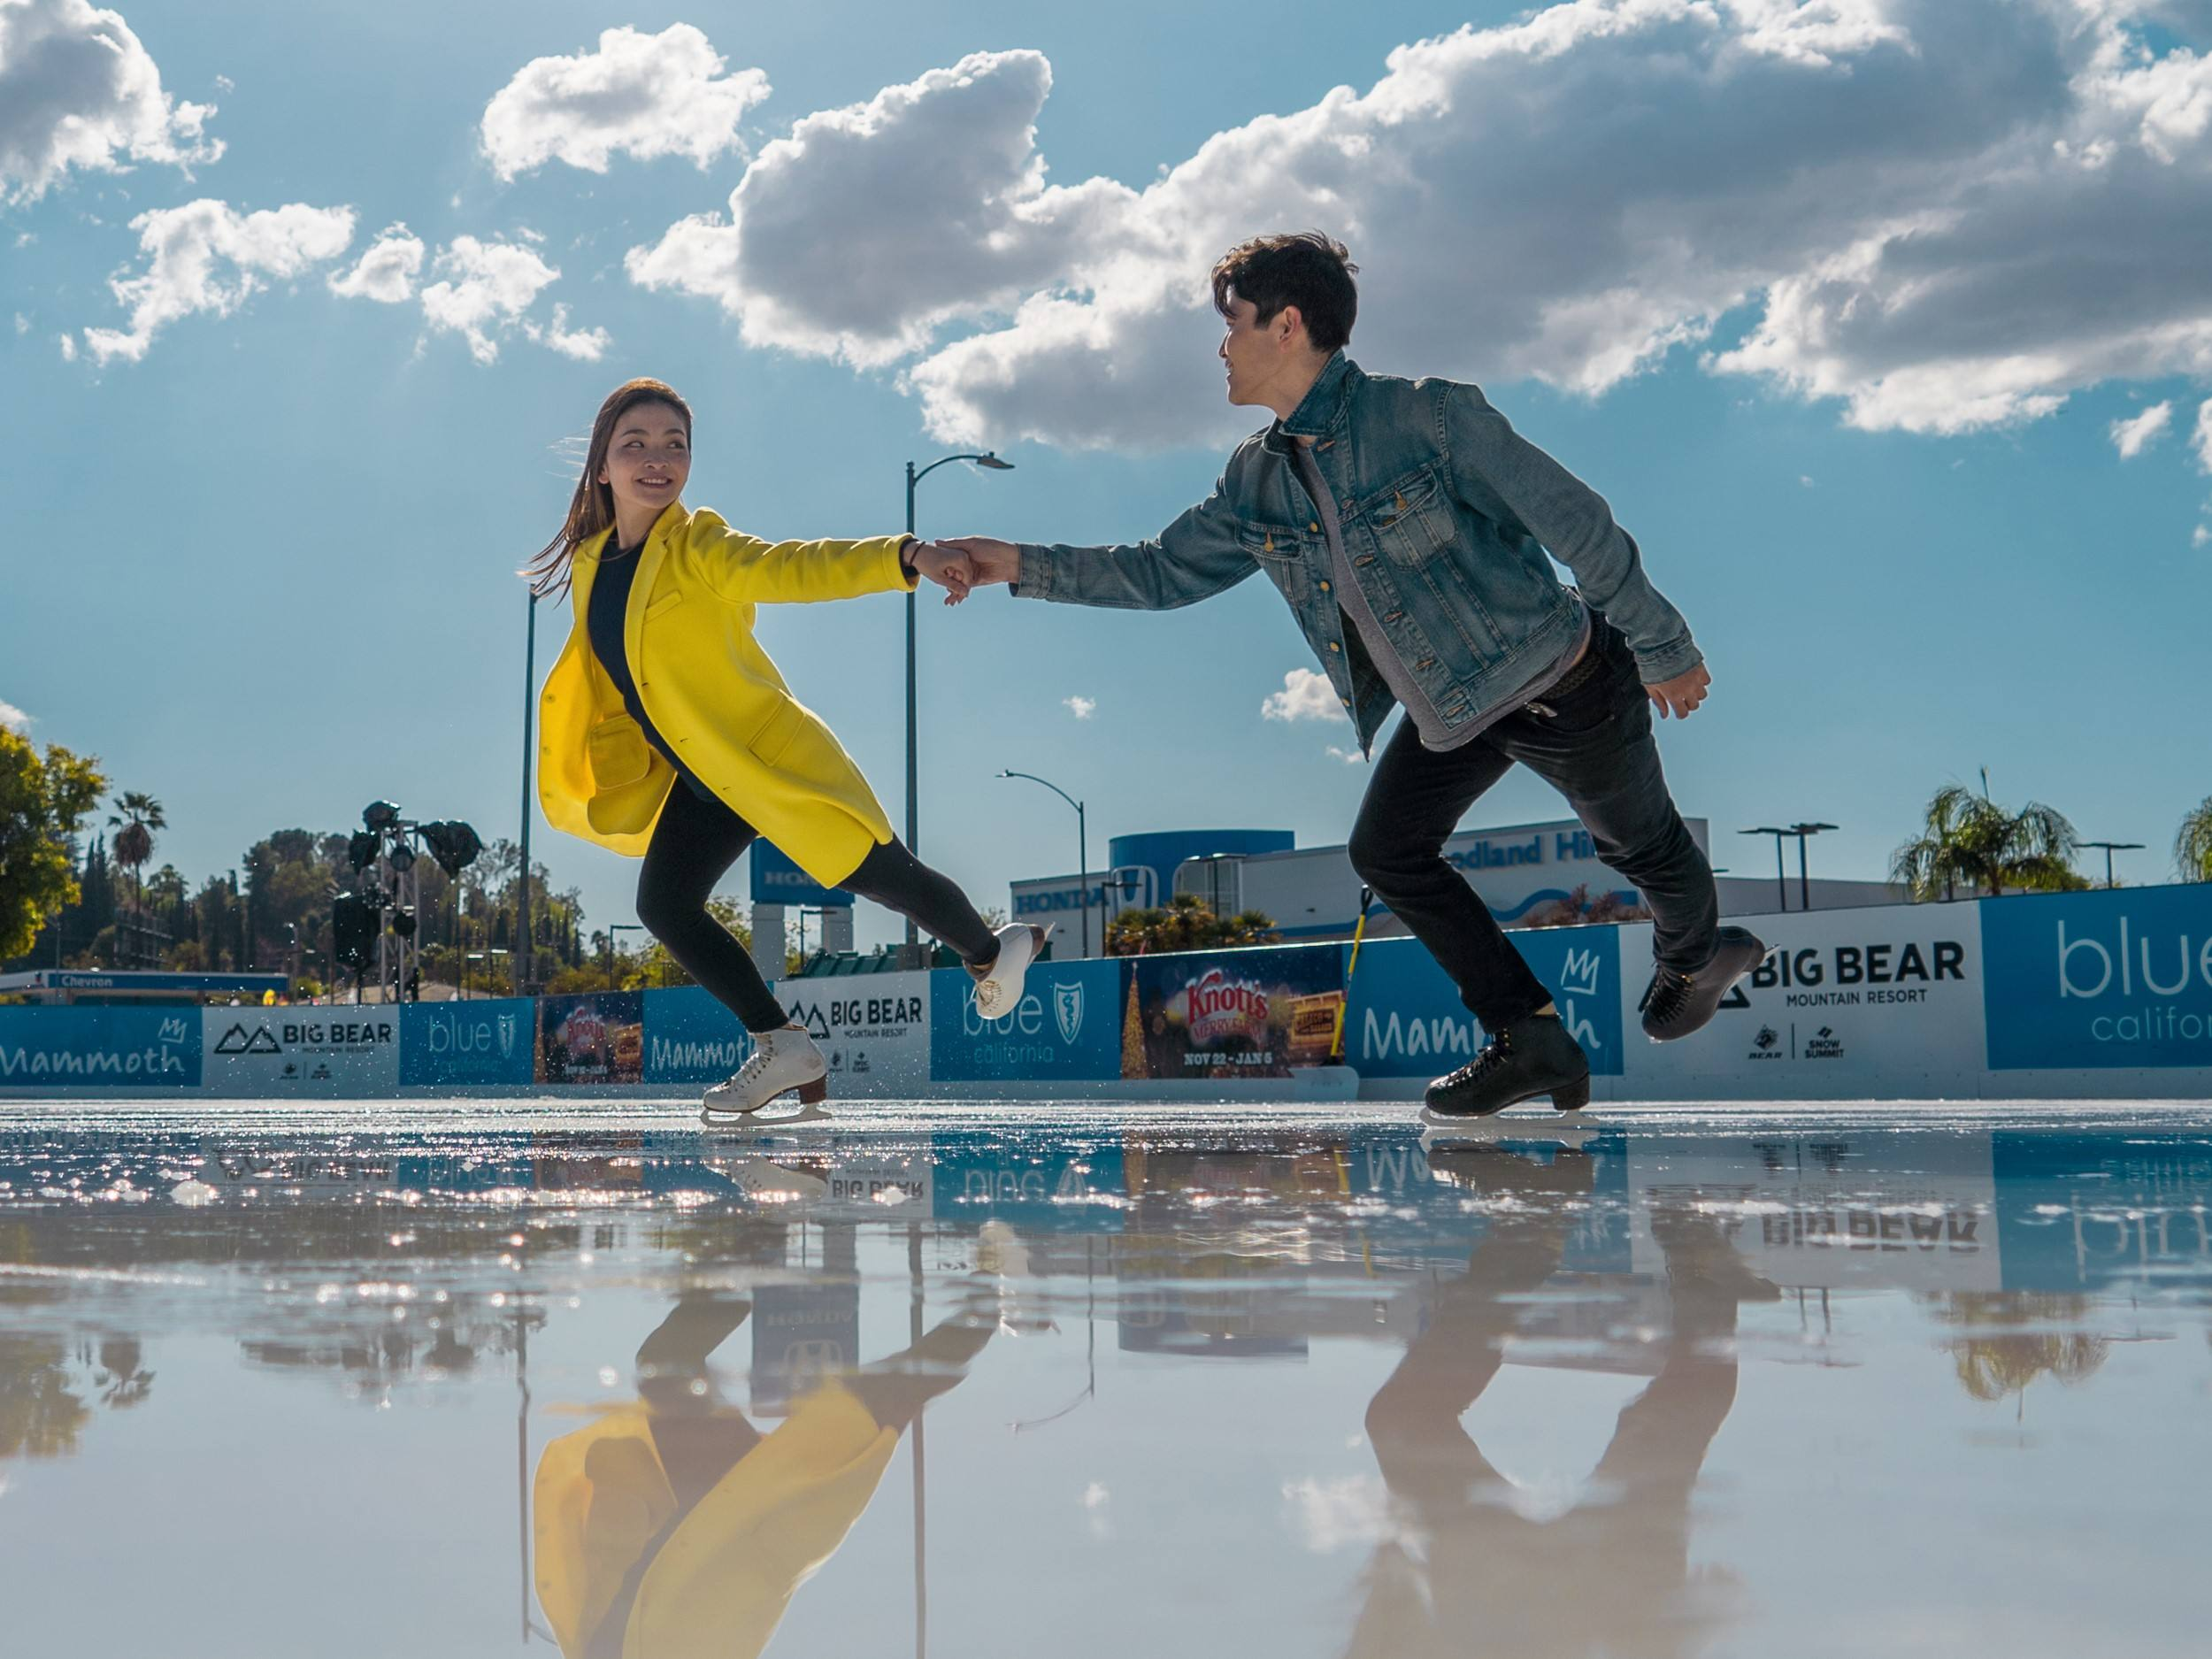 Olympian siblings Alex Shibutani and Maia Shibutani have winter fun under the sun at the Westfield Topanga & The Village.